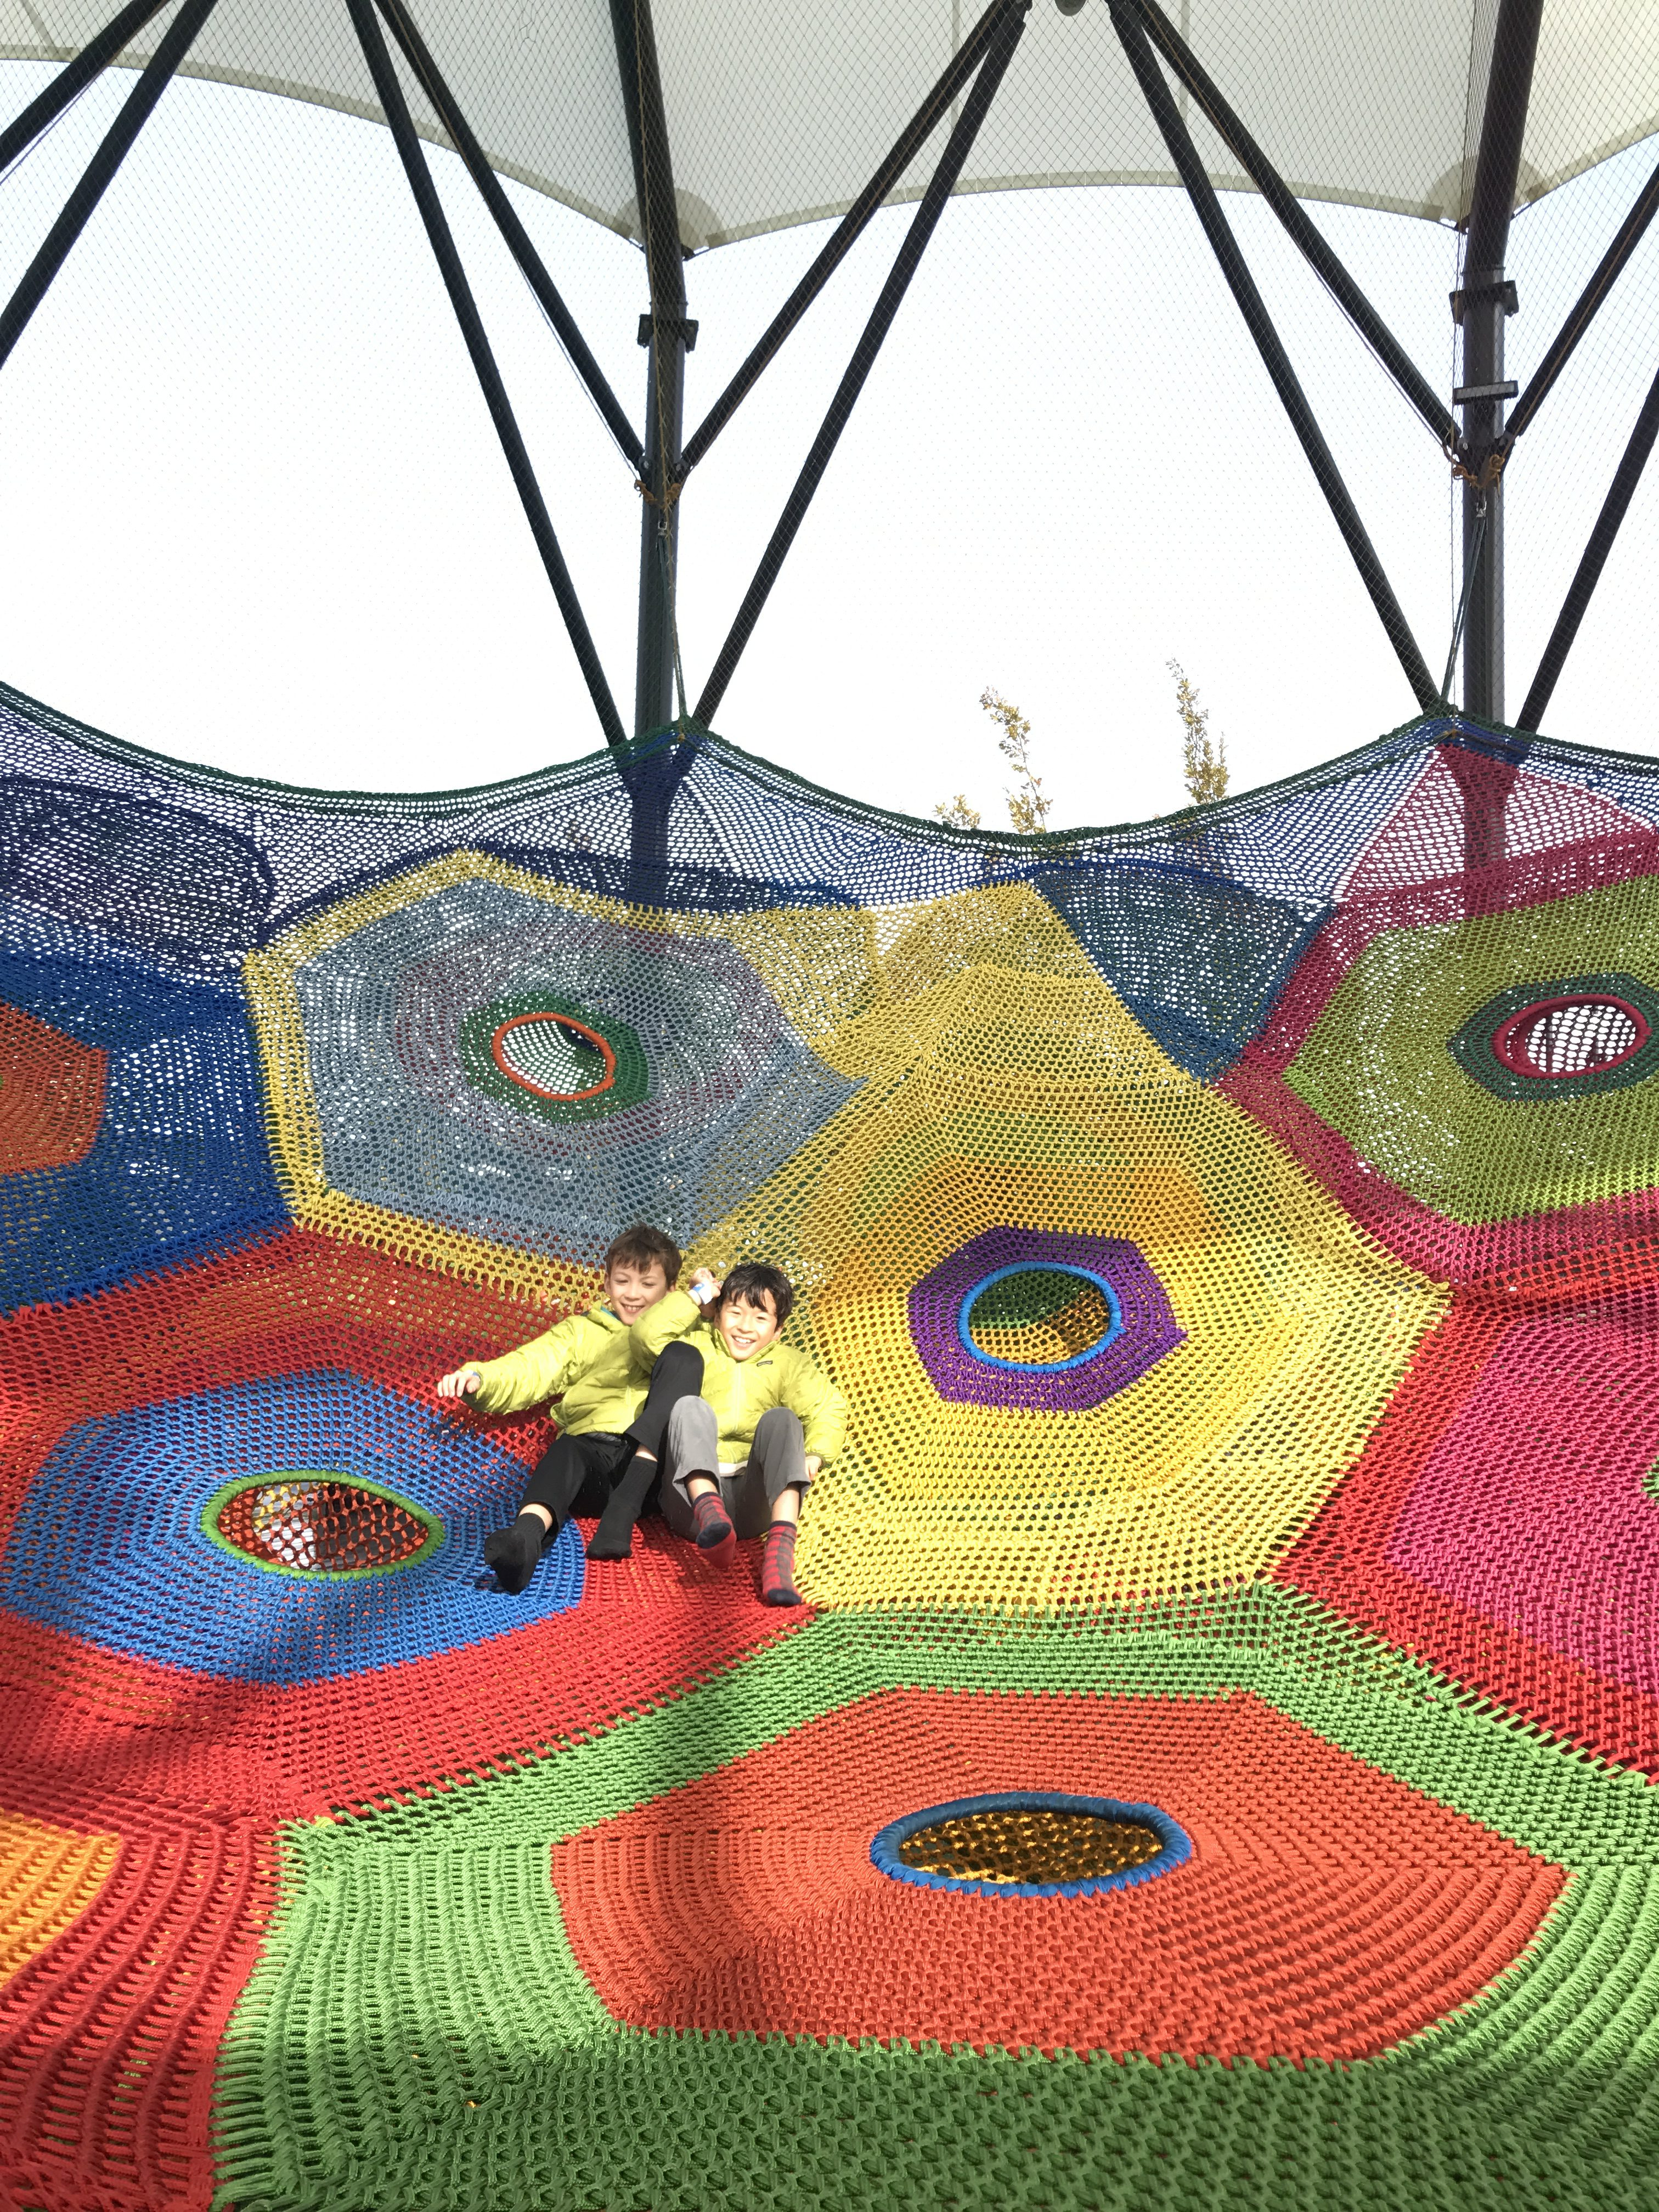 Hanging out in the rain at the Crocheted Net Playground at Whoa Studios in New Zealand with kids